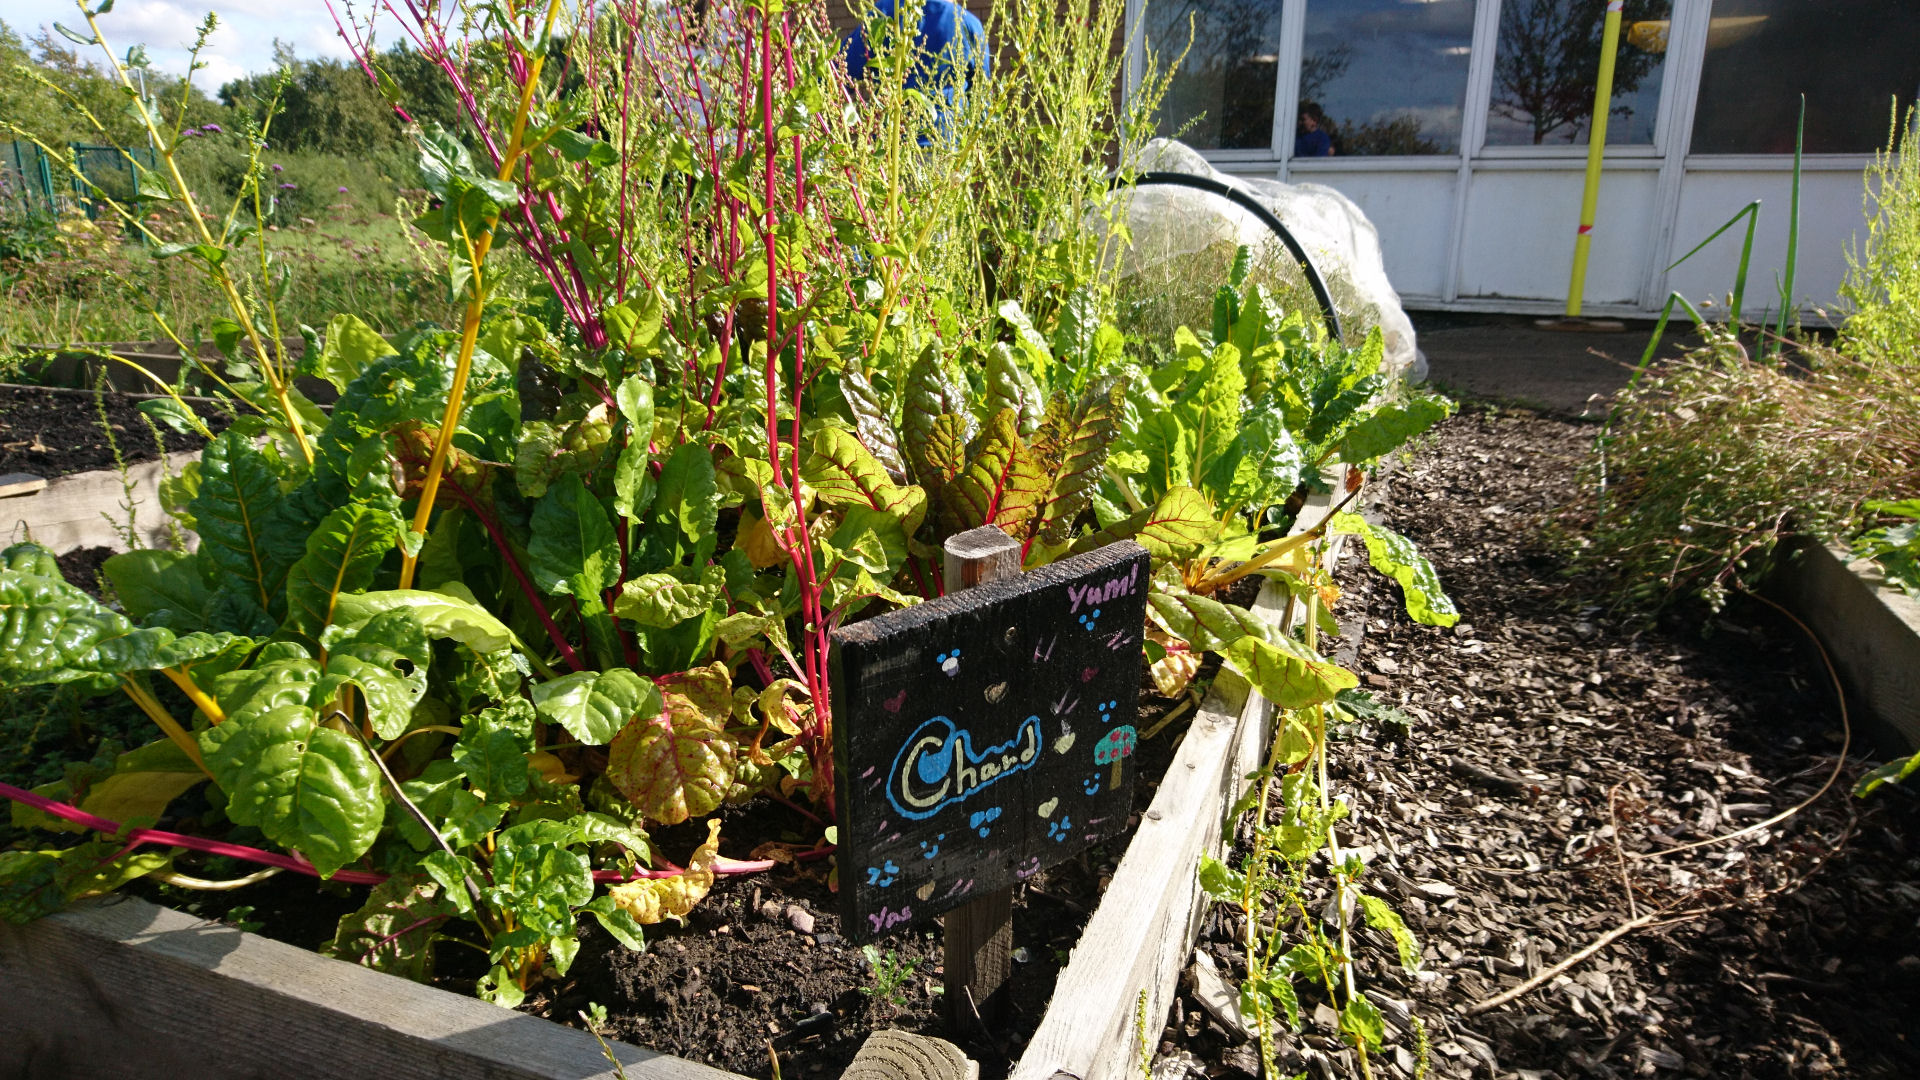 a planter in an allotment with a sign saying Chard